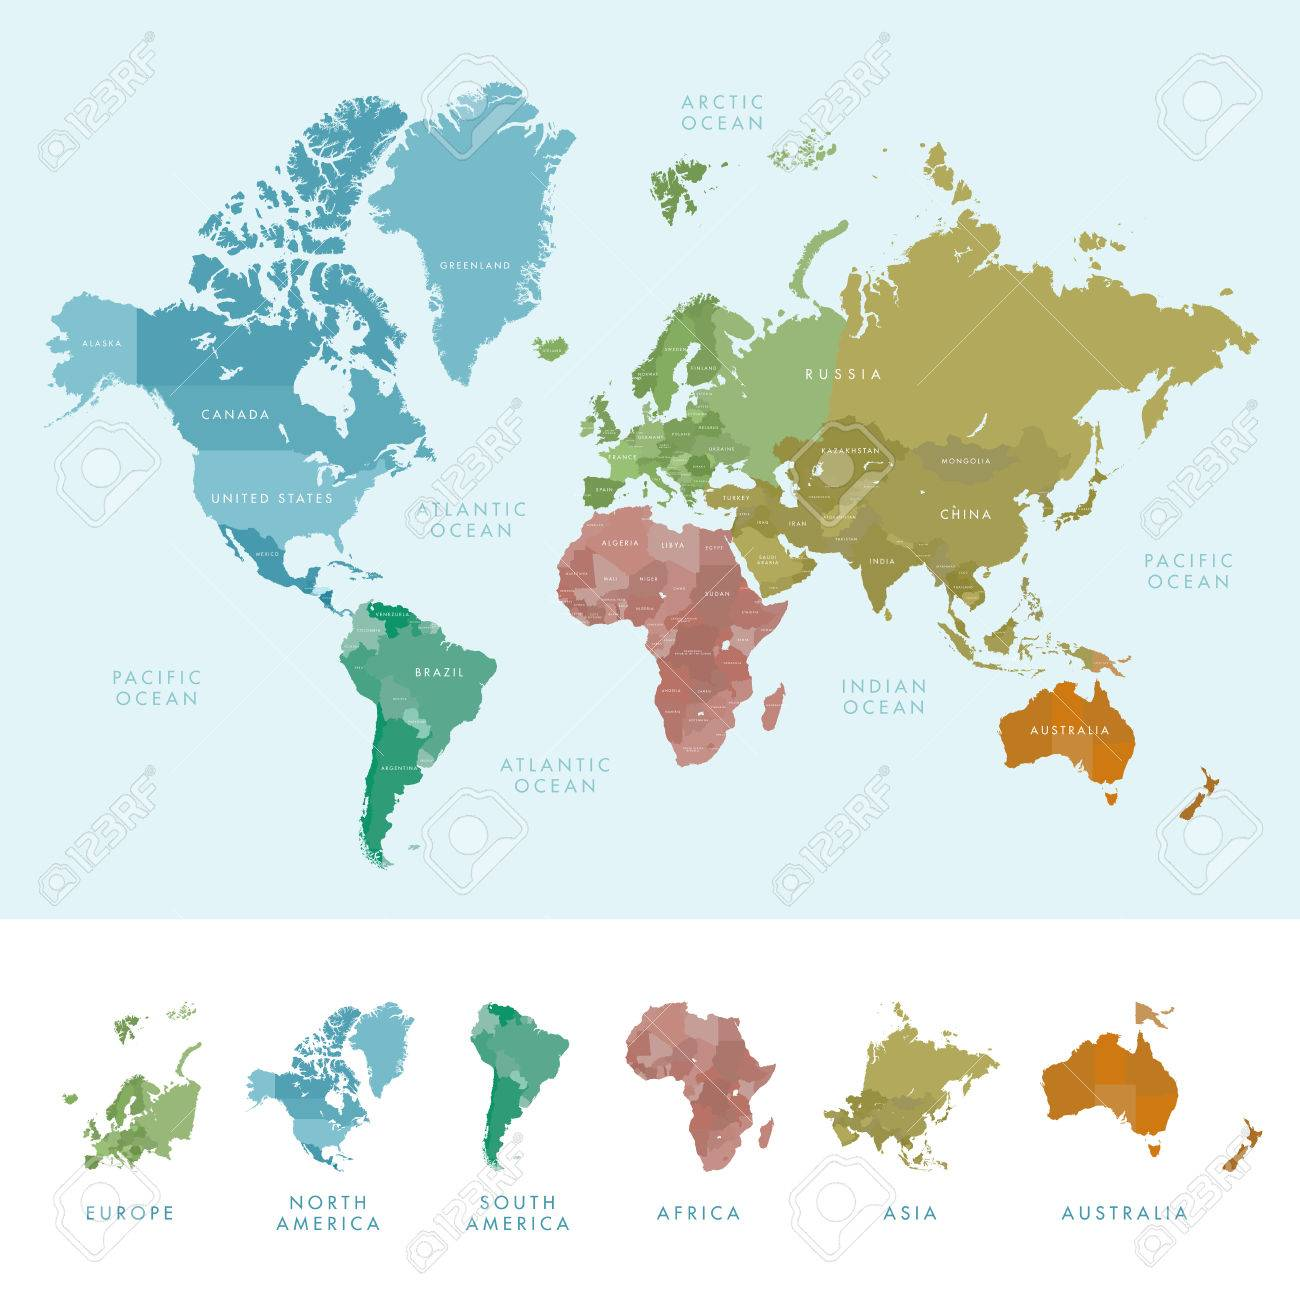 Continents and countries on the world map marked colored highly continents and countries on the world map marked colored highly detailed world map stock gumiabroncs Choice Image